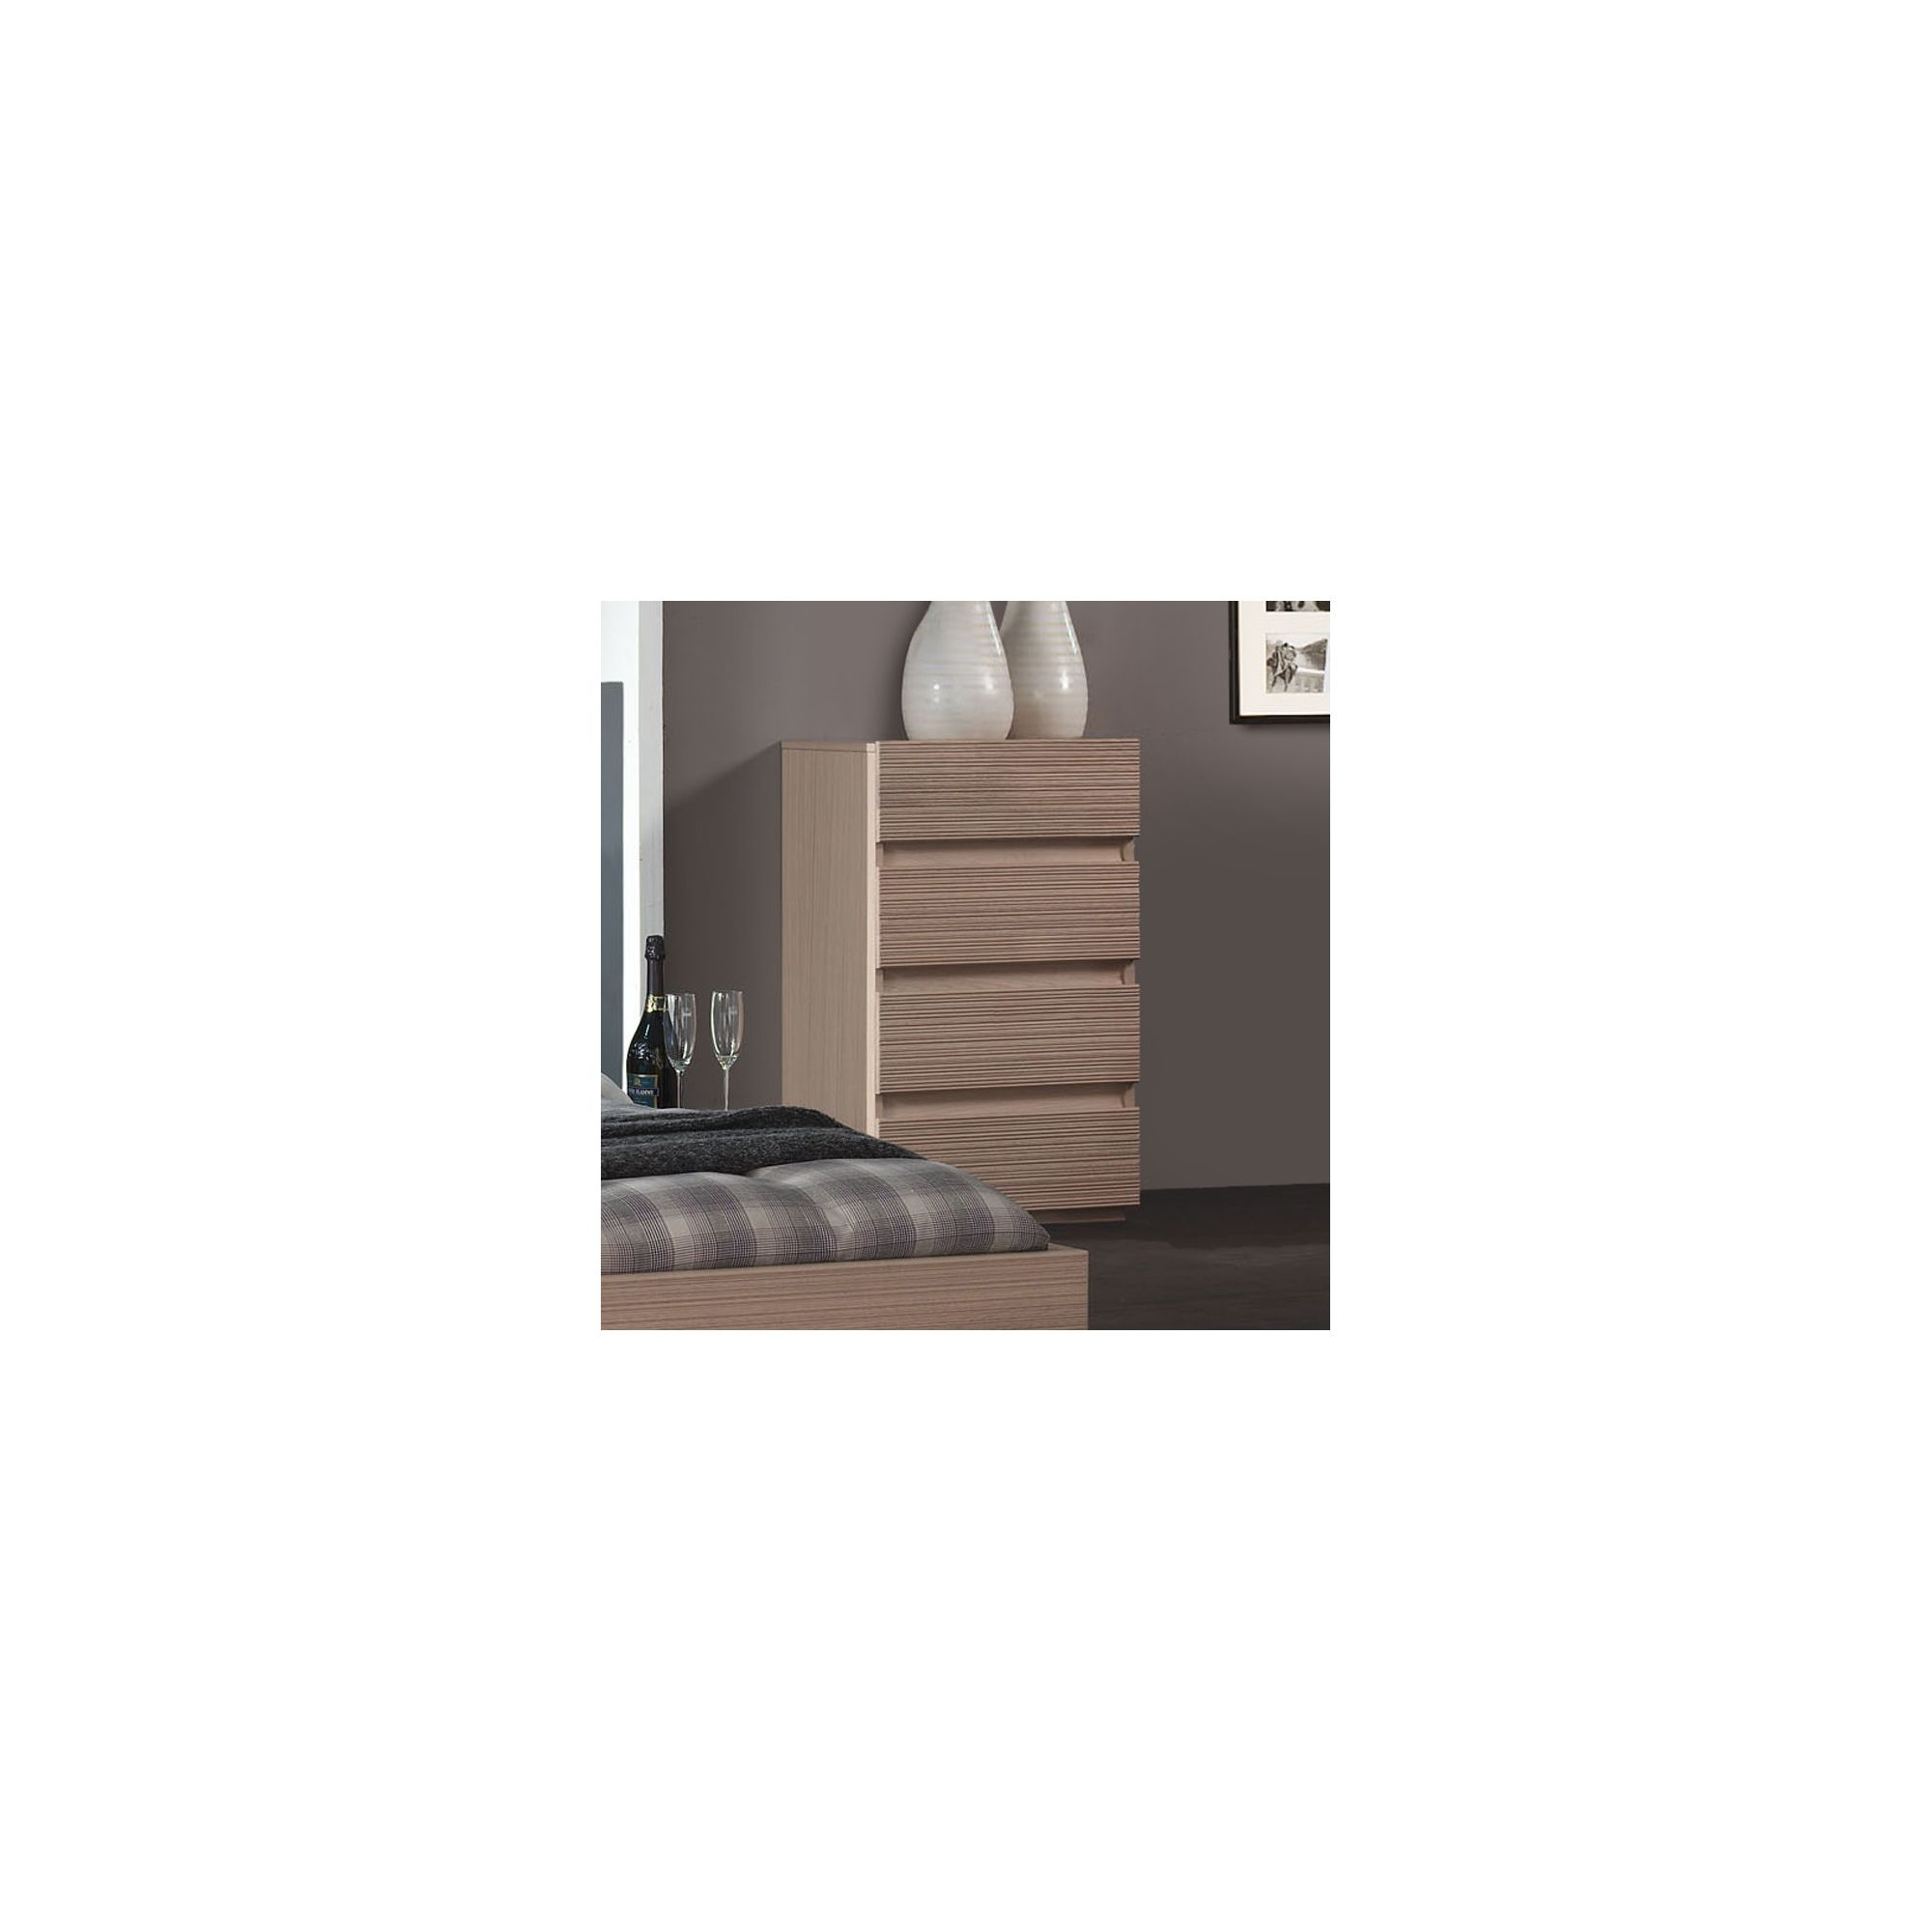 Sleepline Diva 4 Drawer Narrow Chest - Lava Oak at Tesco Direct